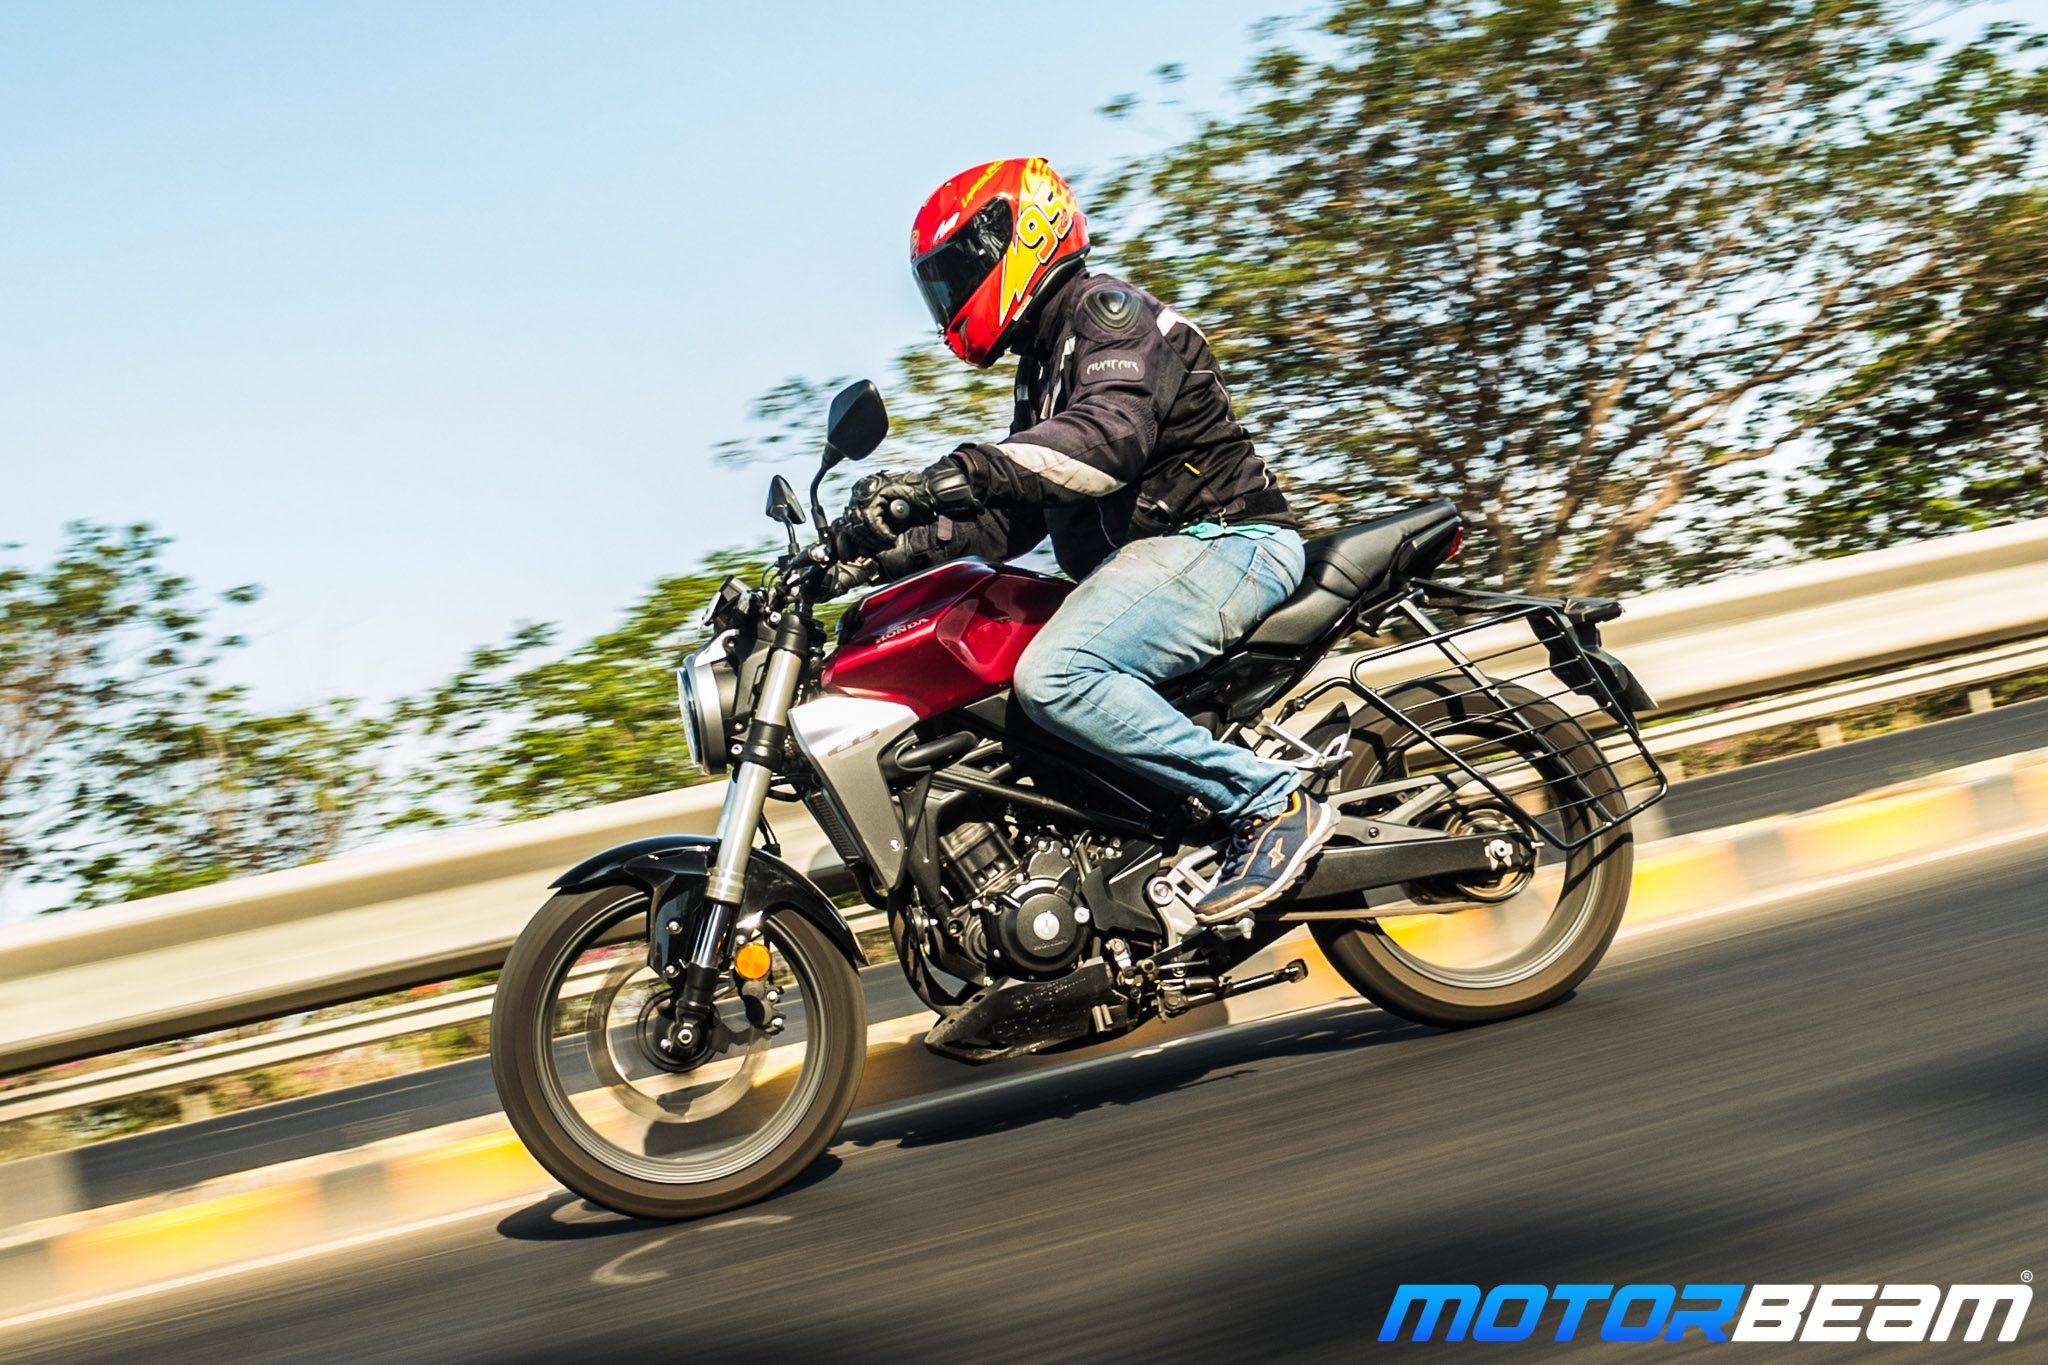 Honda CB300R Hindi Video Review